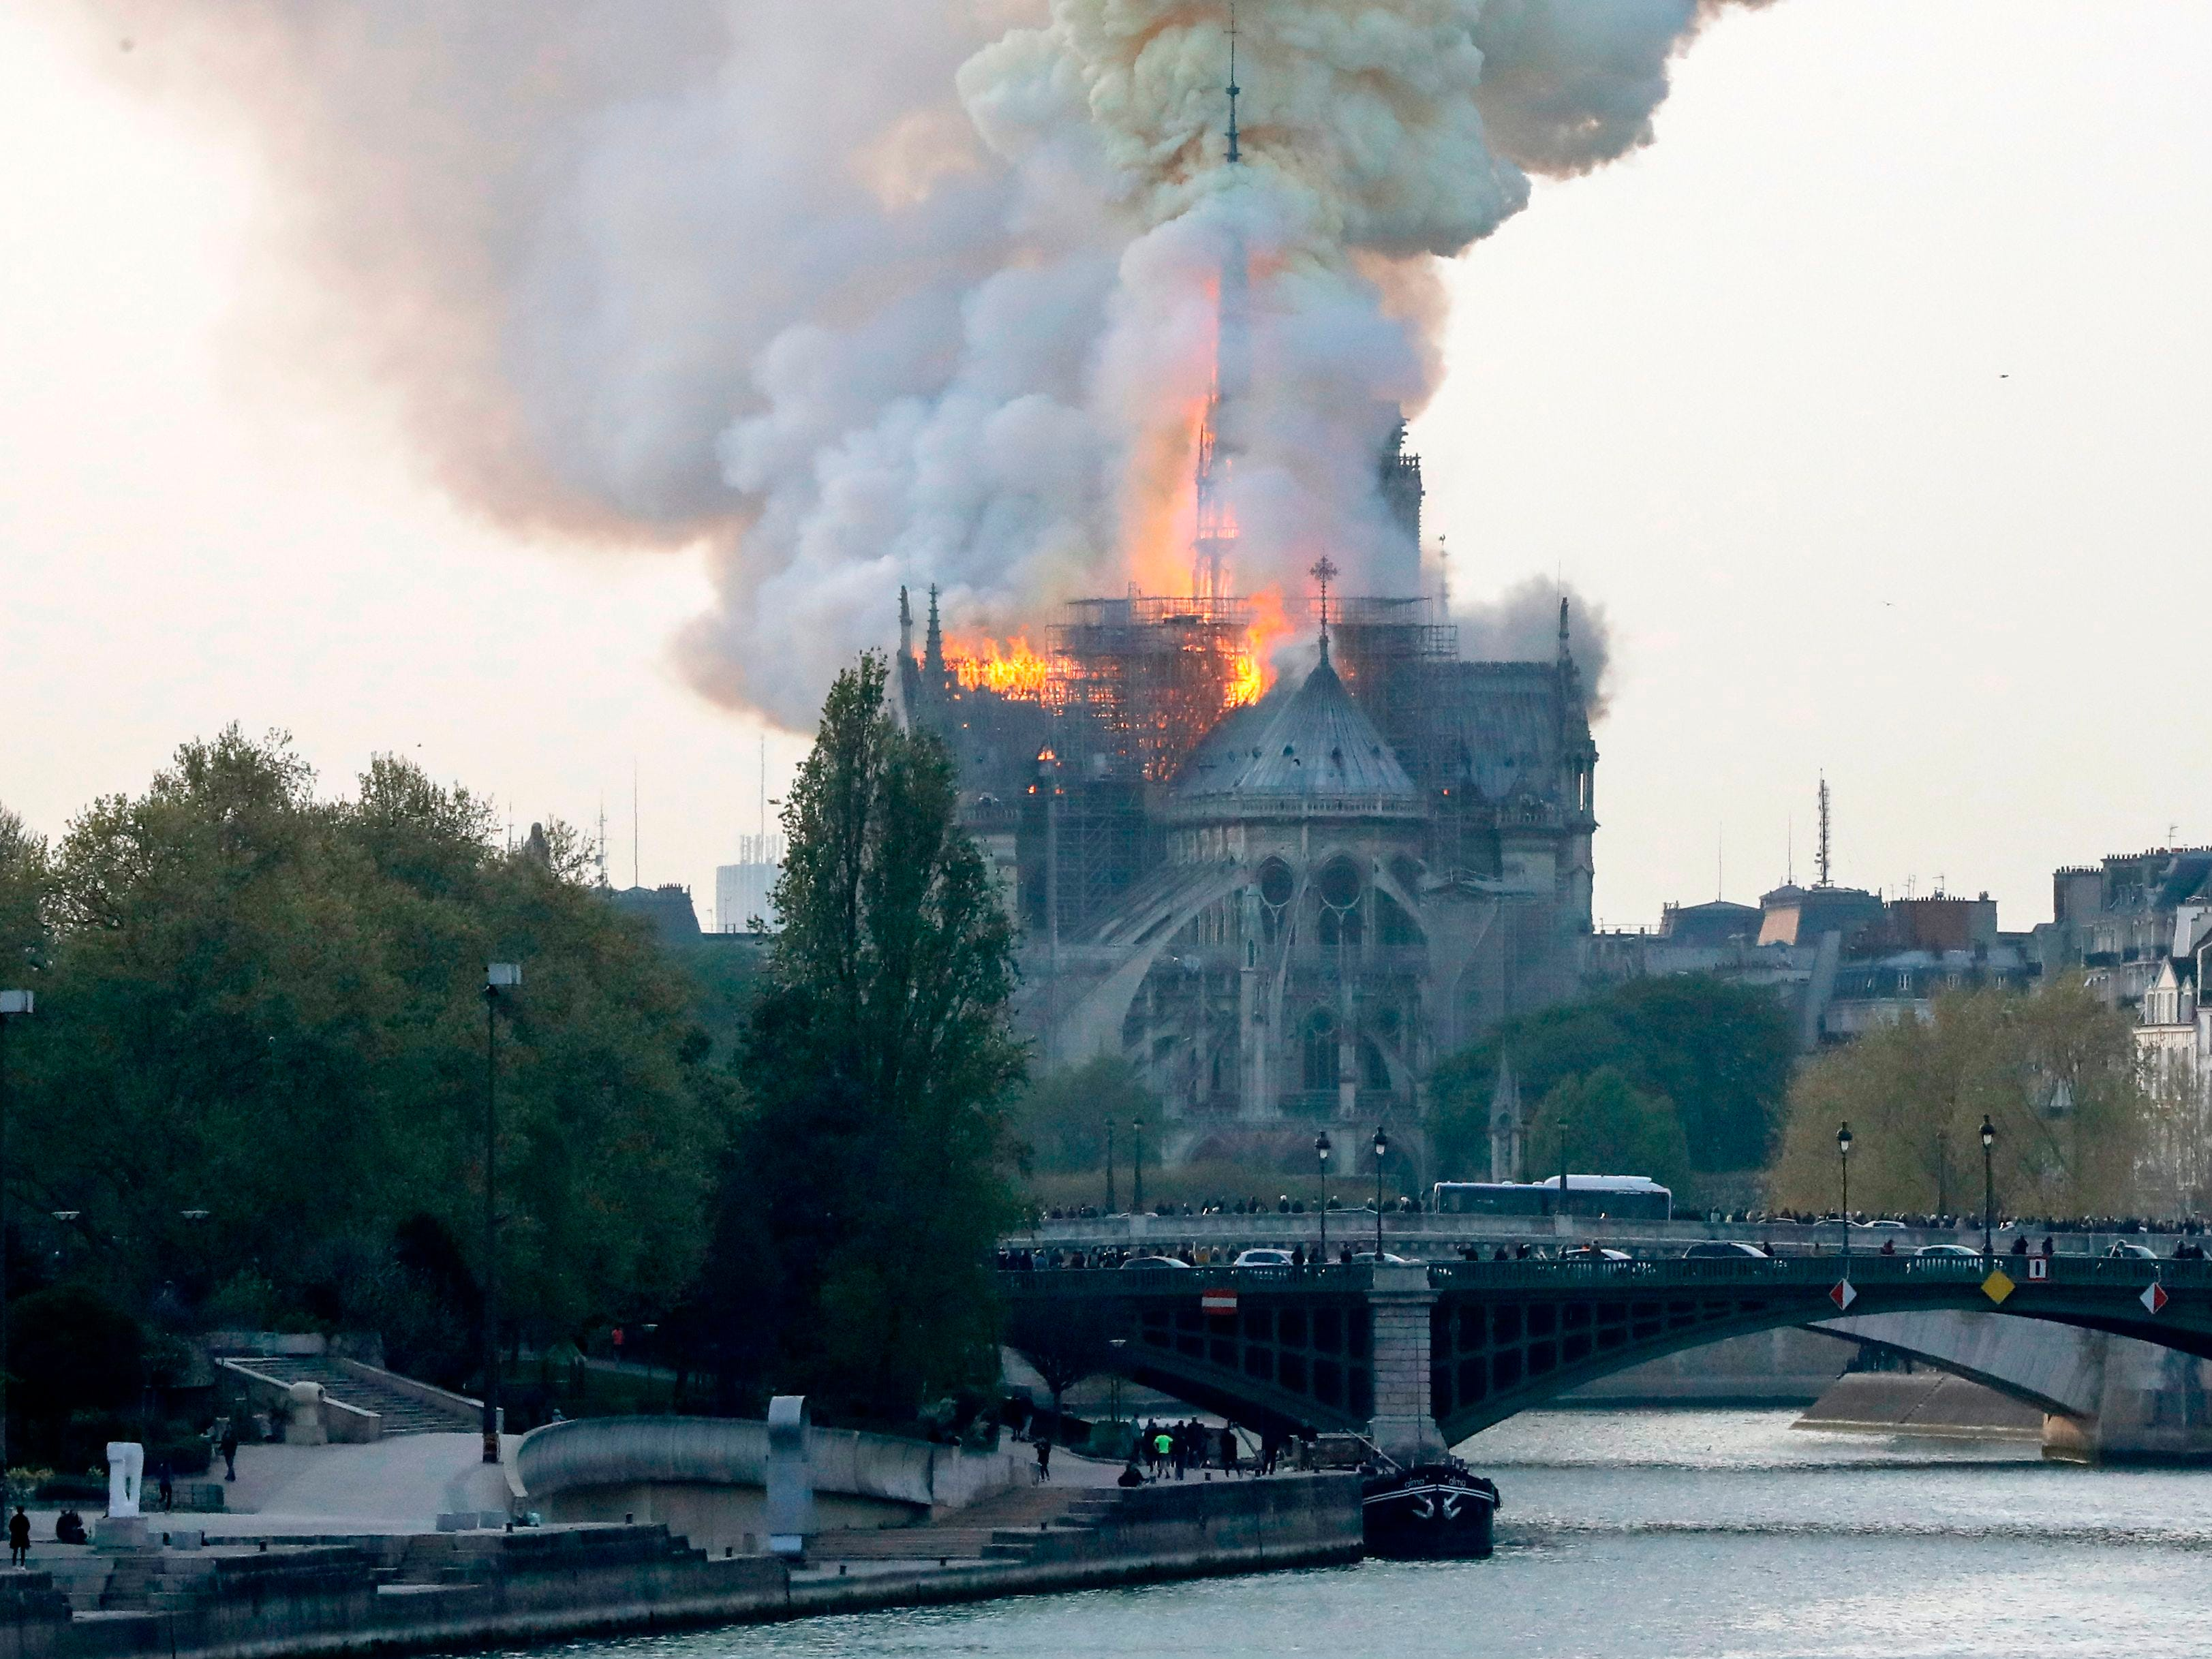 Smoke and flames rise during a fire at the landmark Notre Dame Cathedral.